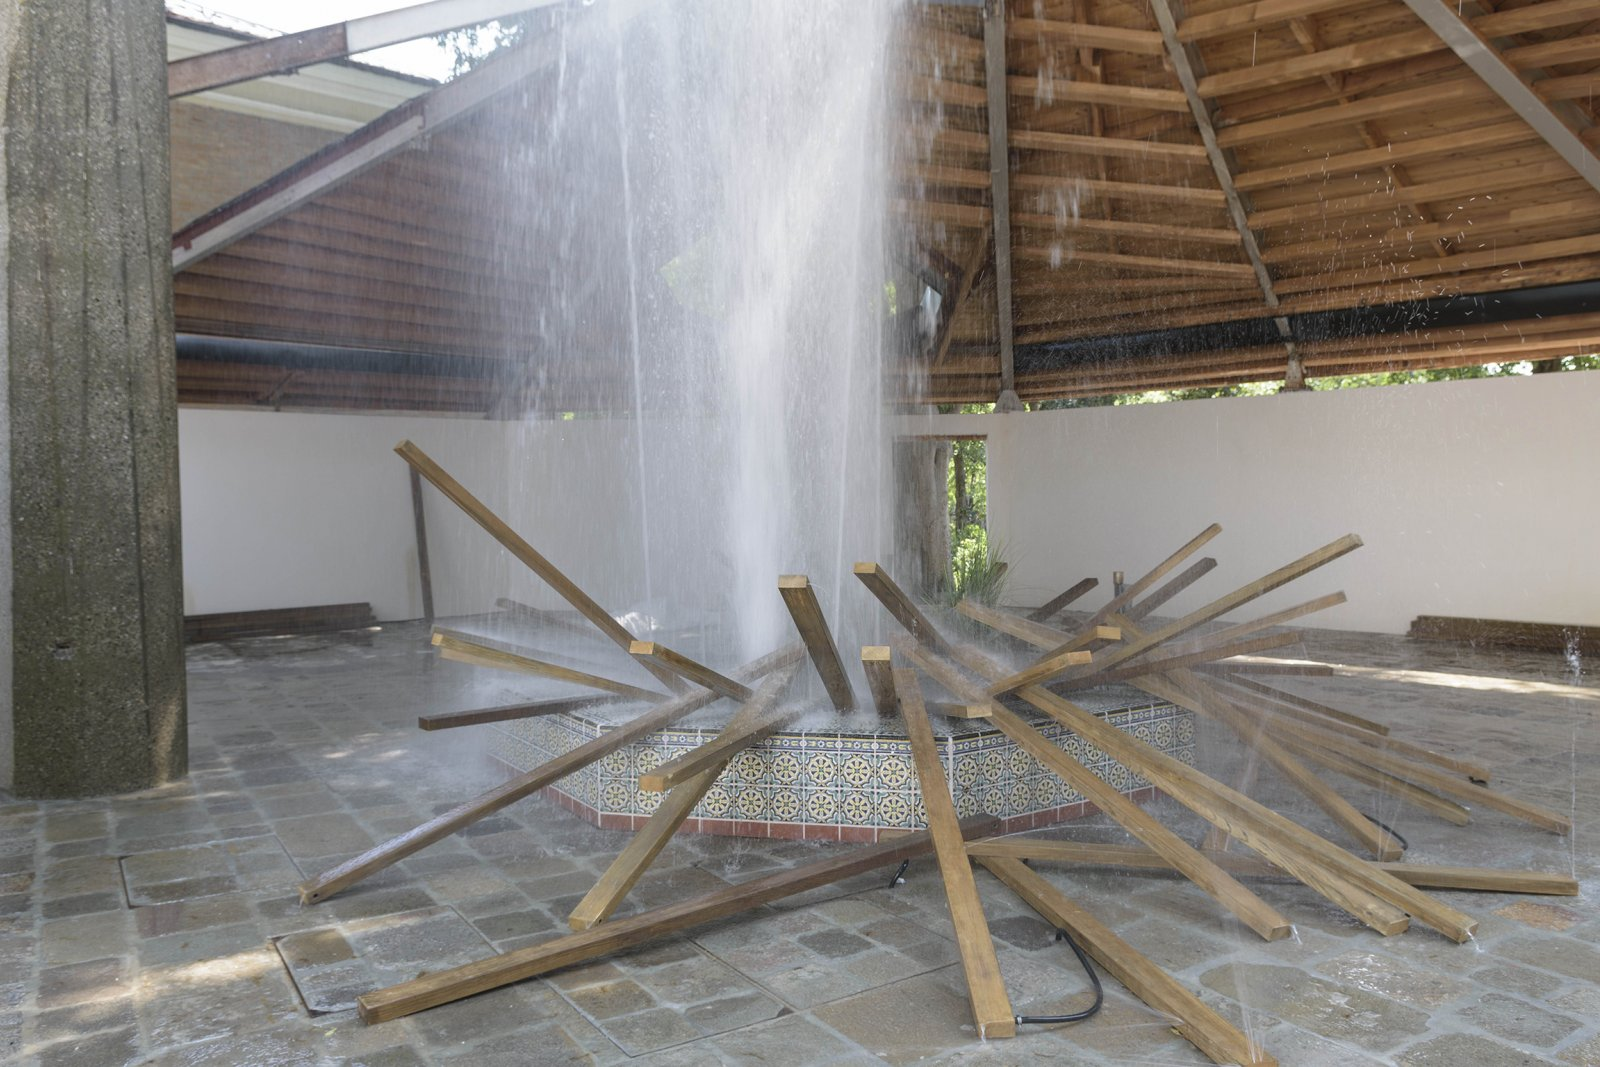 Geoffrey Farmer, SFAI Fountain, 2017, resin structure covered by ceramic tiles, artificial plants, acid-etched brass, waterworks, 150 x 150 x 19 in. (381 x 381 x 47 cm). Installation view, A way out of the mirror, Canada Pavilion, 57th Venice Biennale, Venice, Italy